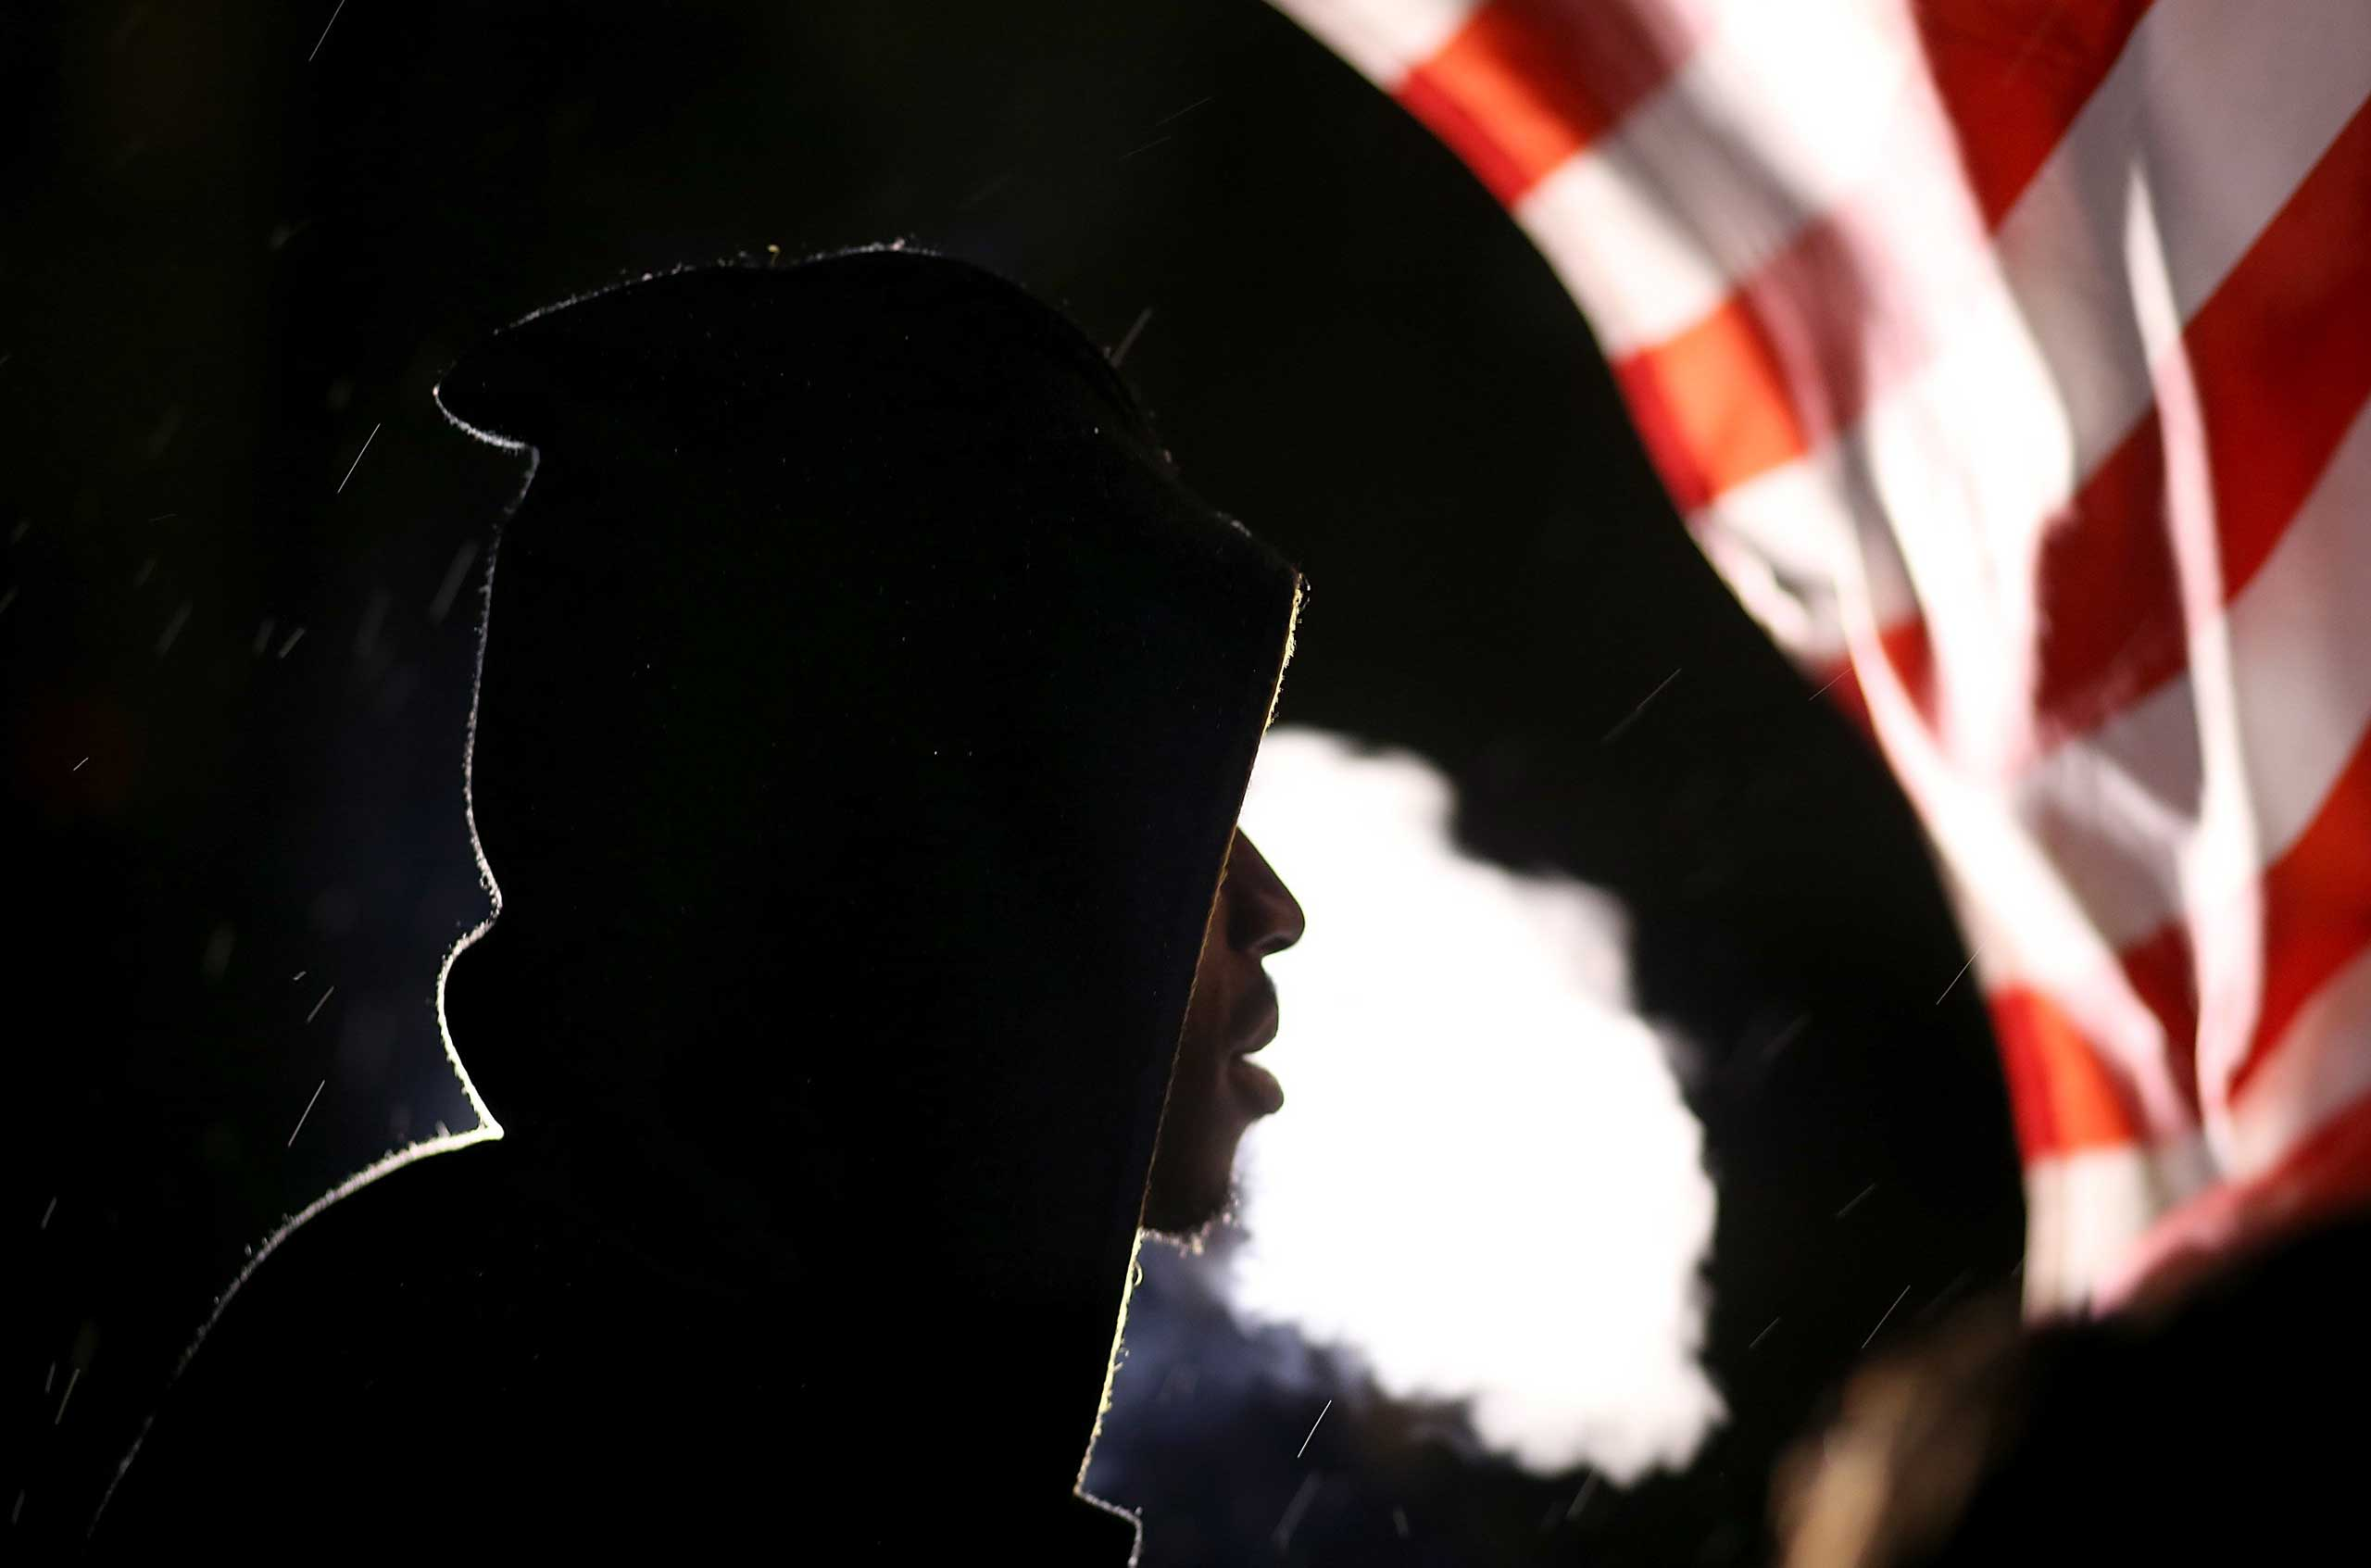 A demonstrator protesting the shooting death of Michael Brown blows cigar smoke in Ferguson, Mo. on Nov. 22, 2014